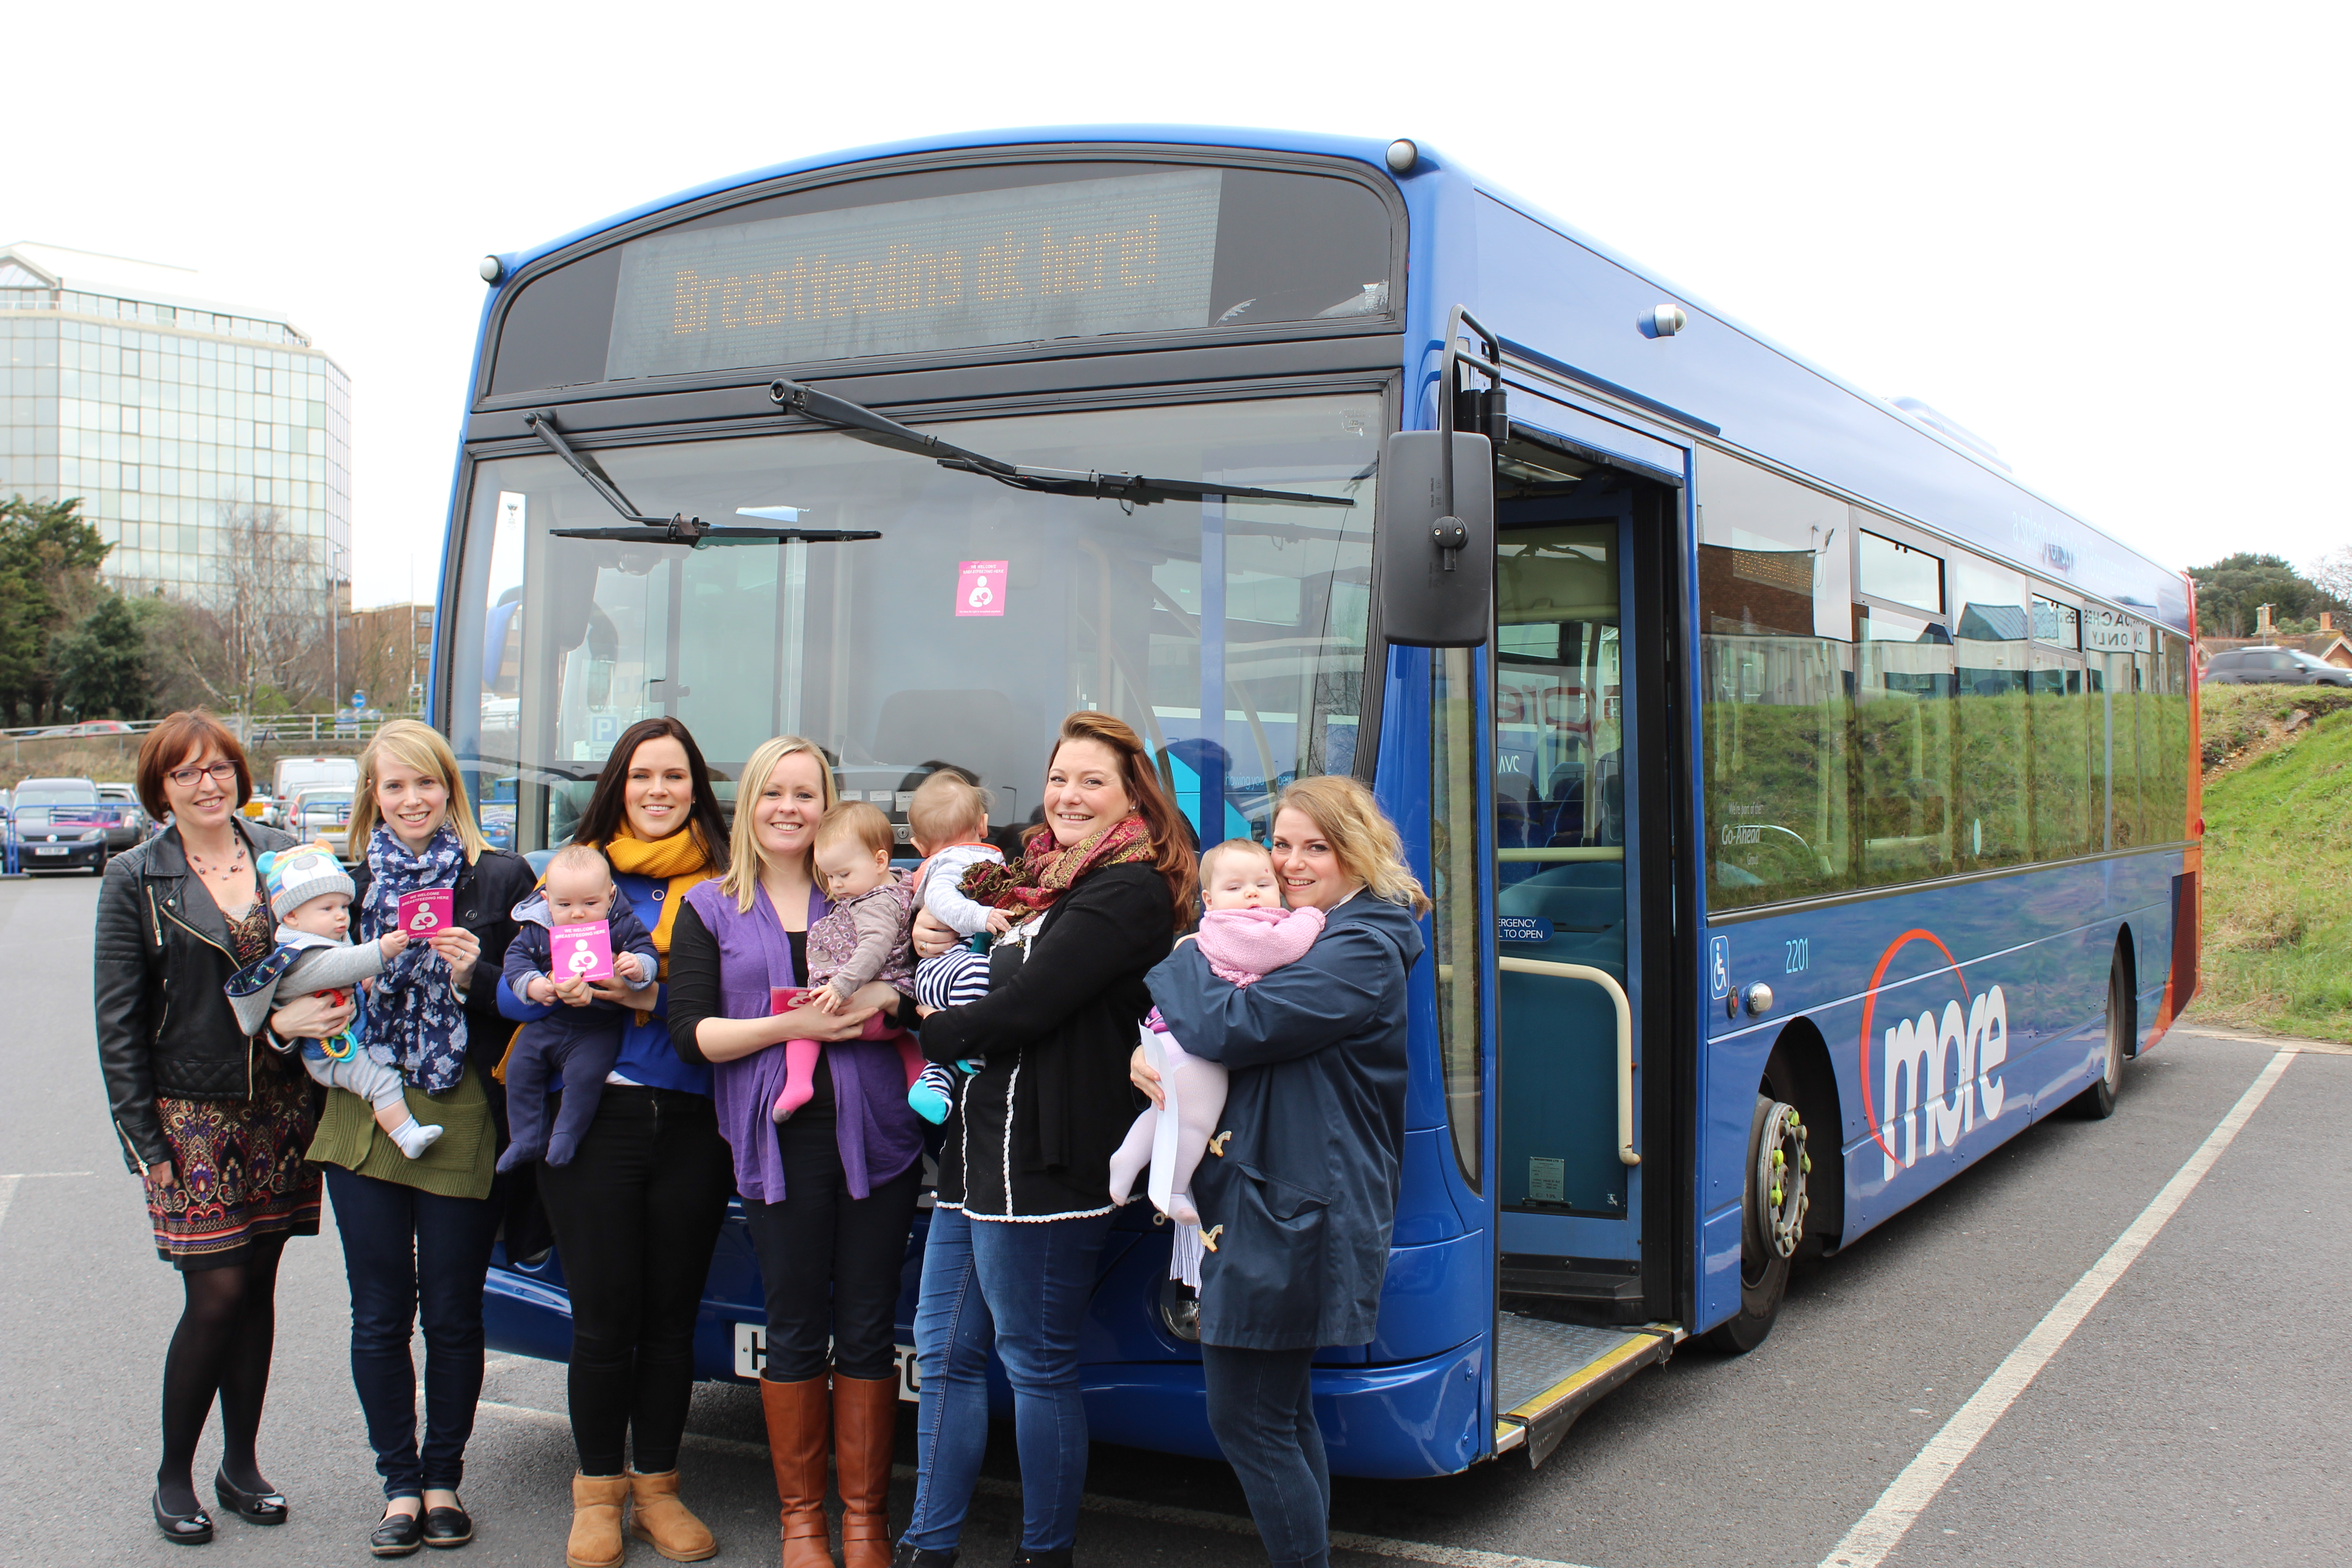 All aboard as Morebus join Dorset HealthCare's breastfeeding campaign